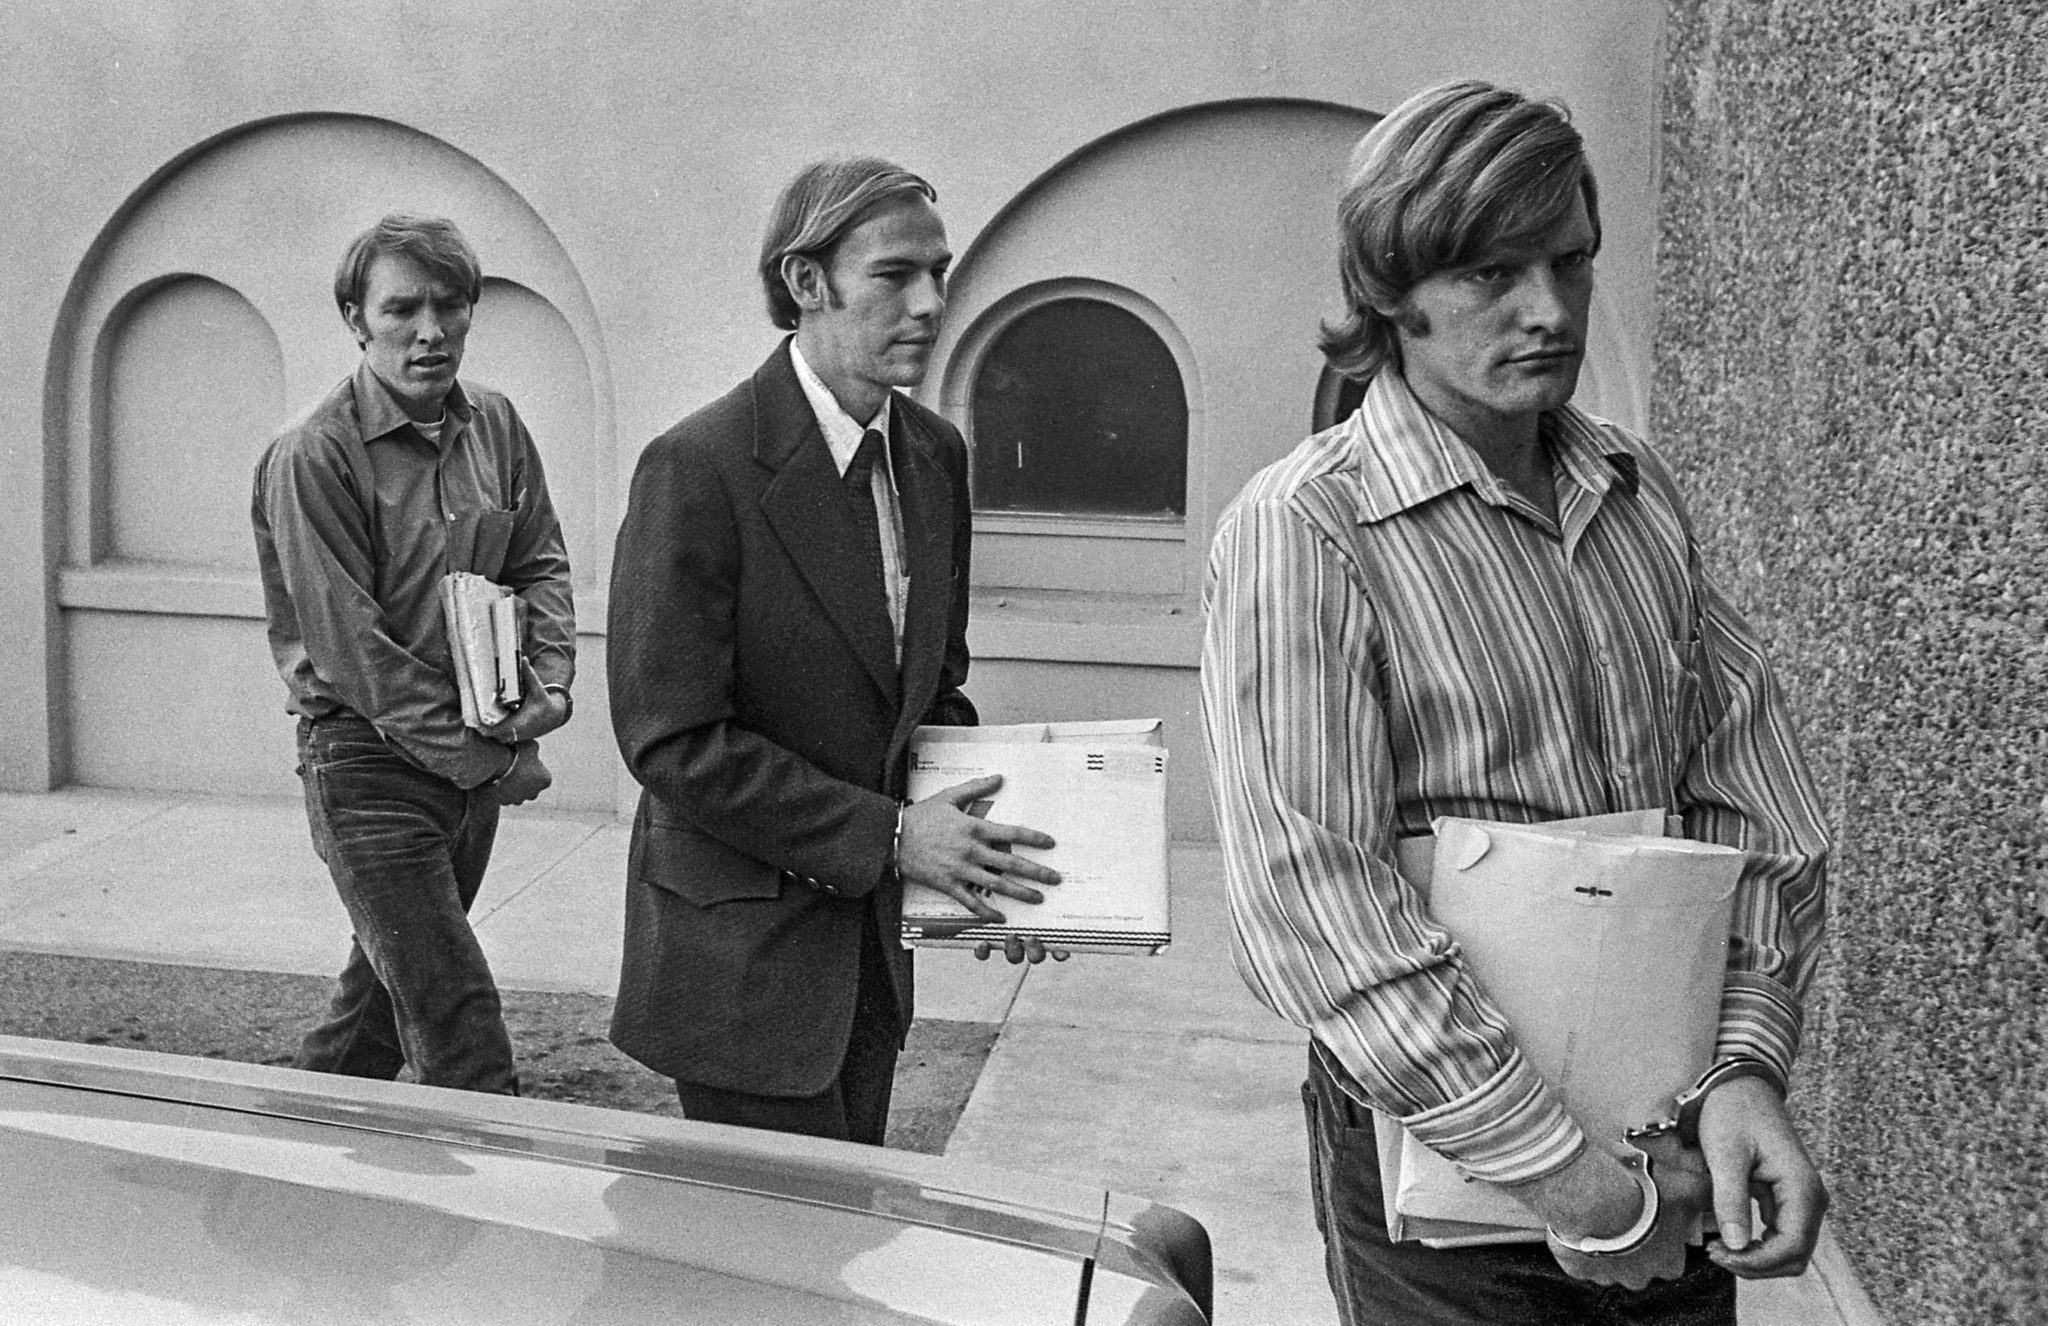 Oct. 19, 1976: Chowchilla bus kidnapping suspects from left, James Schoenfeld, Fred N. Woods and Ric